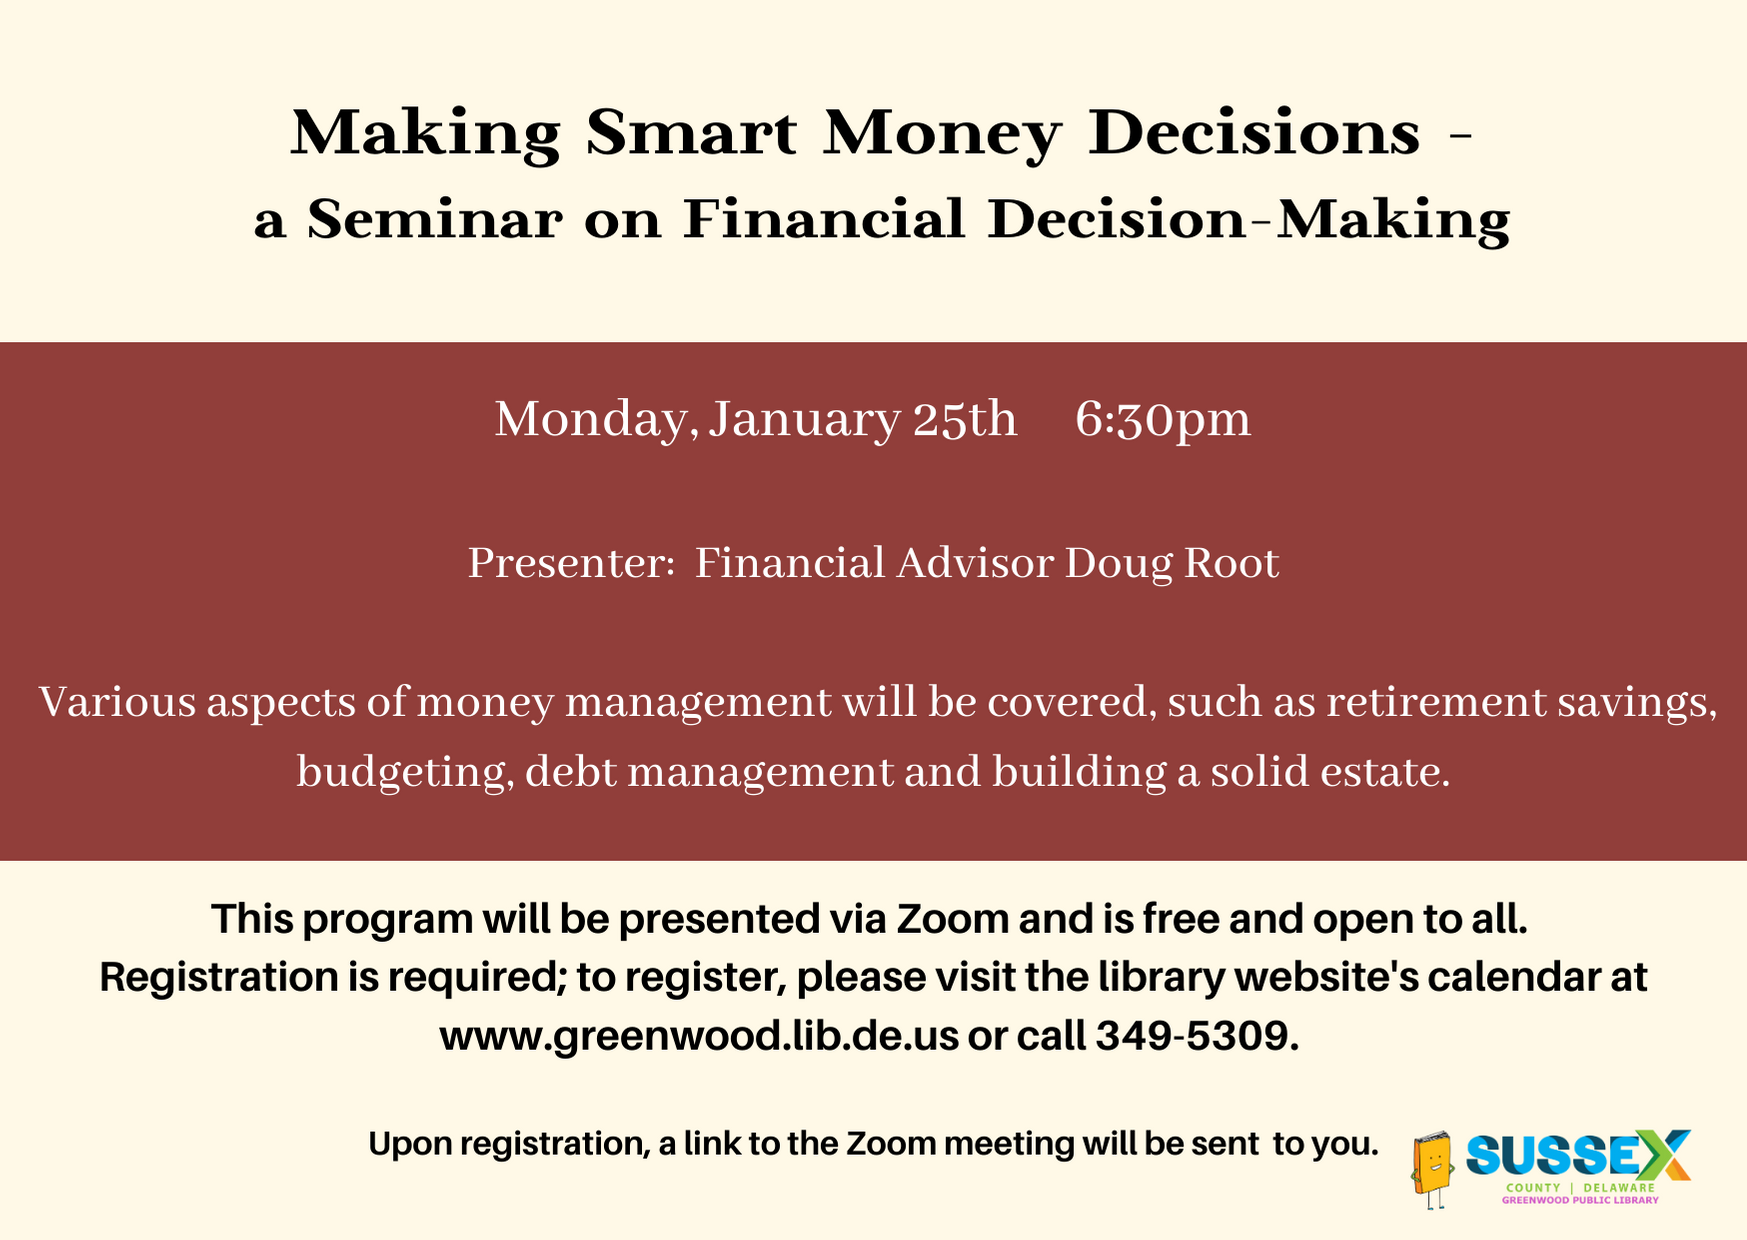 Making Smart Money Decisions - a Seminar on Financial Decision-Making